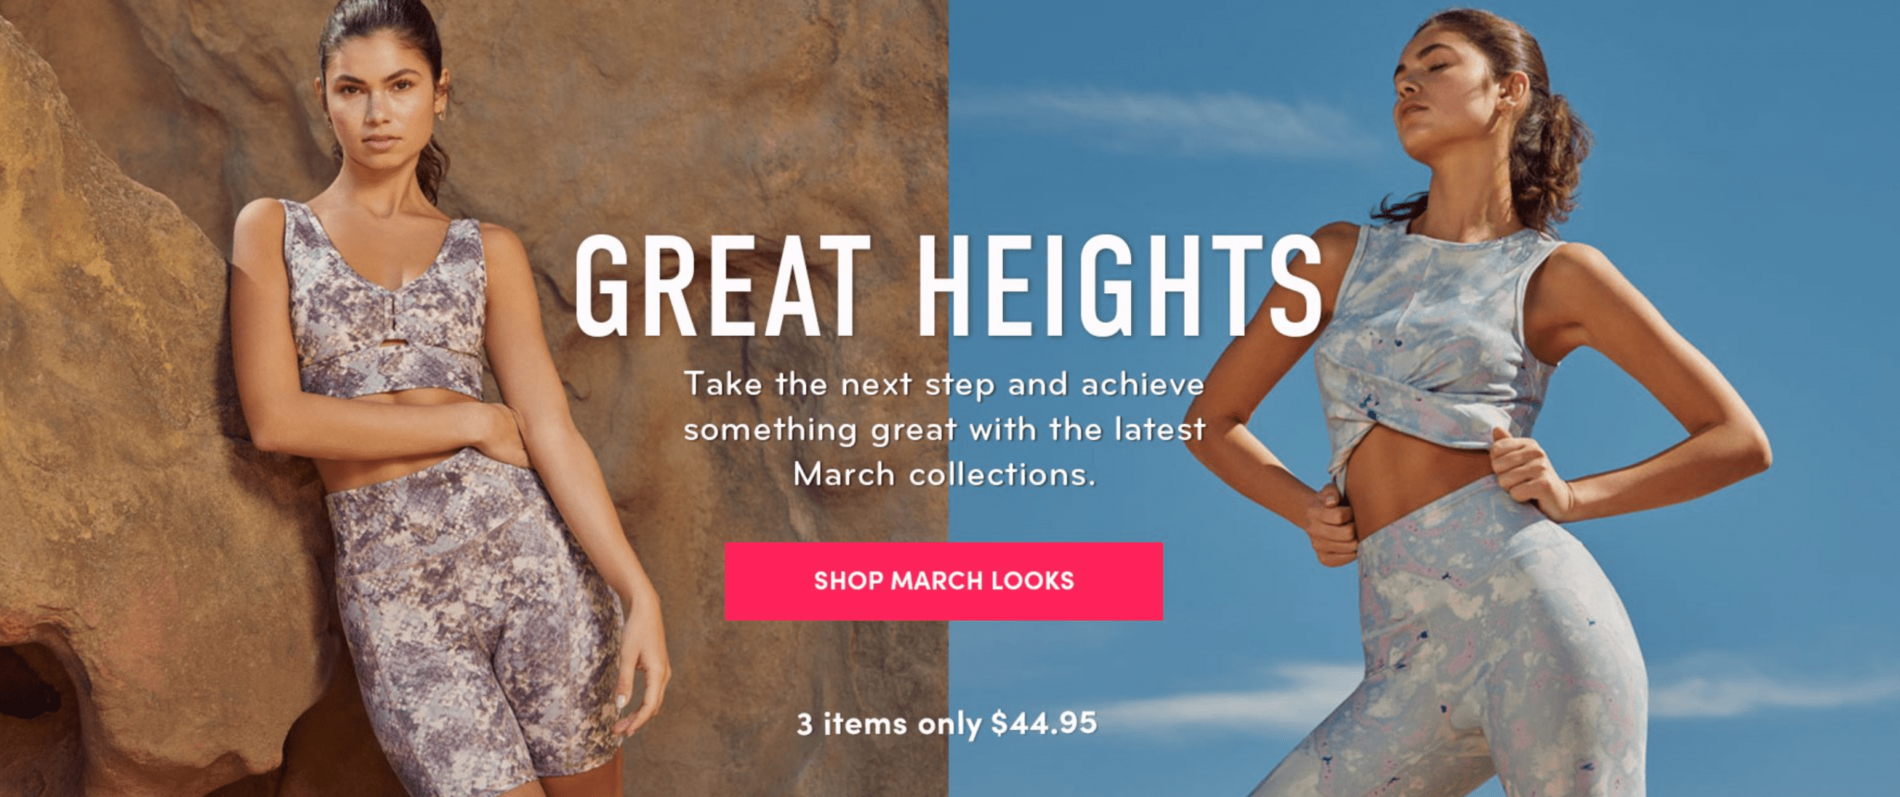 Ellie Women's Fitness Subscription Box -March 2021 Reveal + Coupon Code!